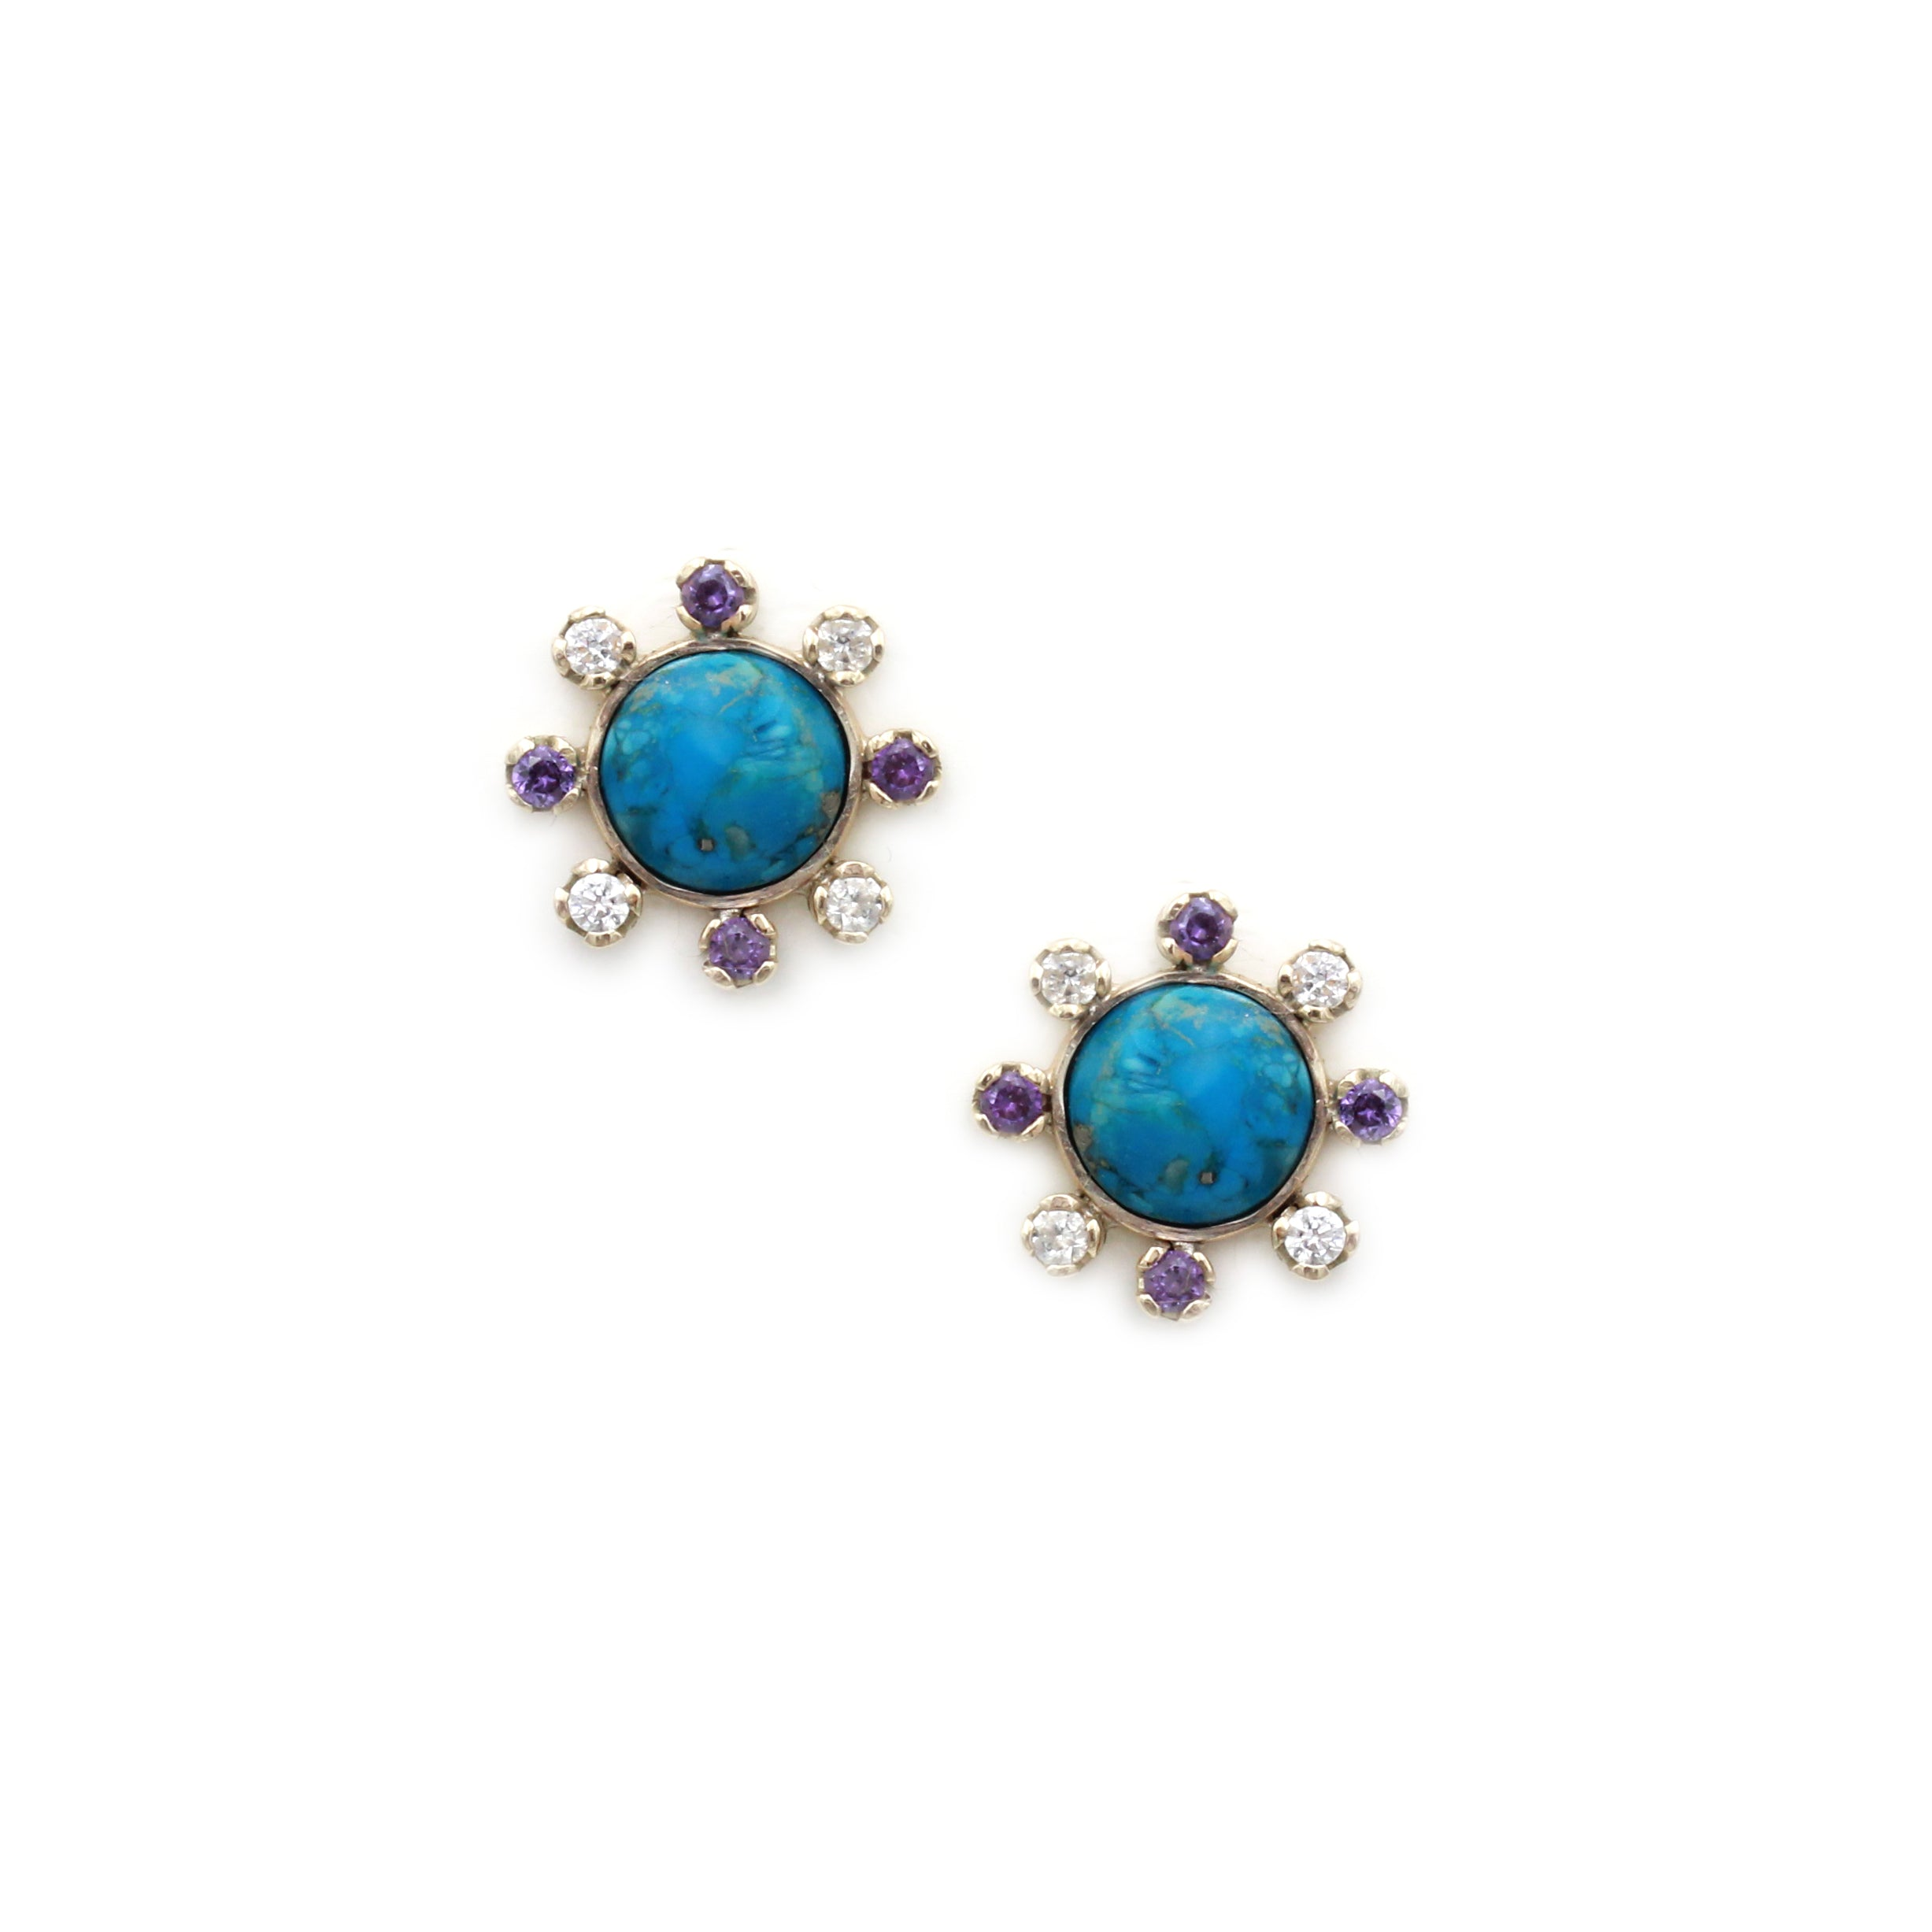 Turquoise, Amethyst and Zircon Gold Earrings